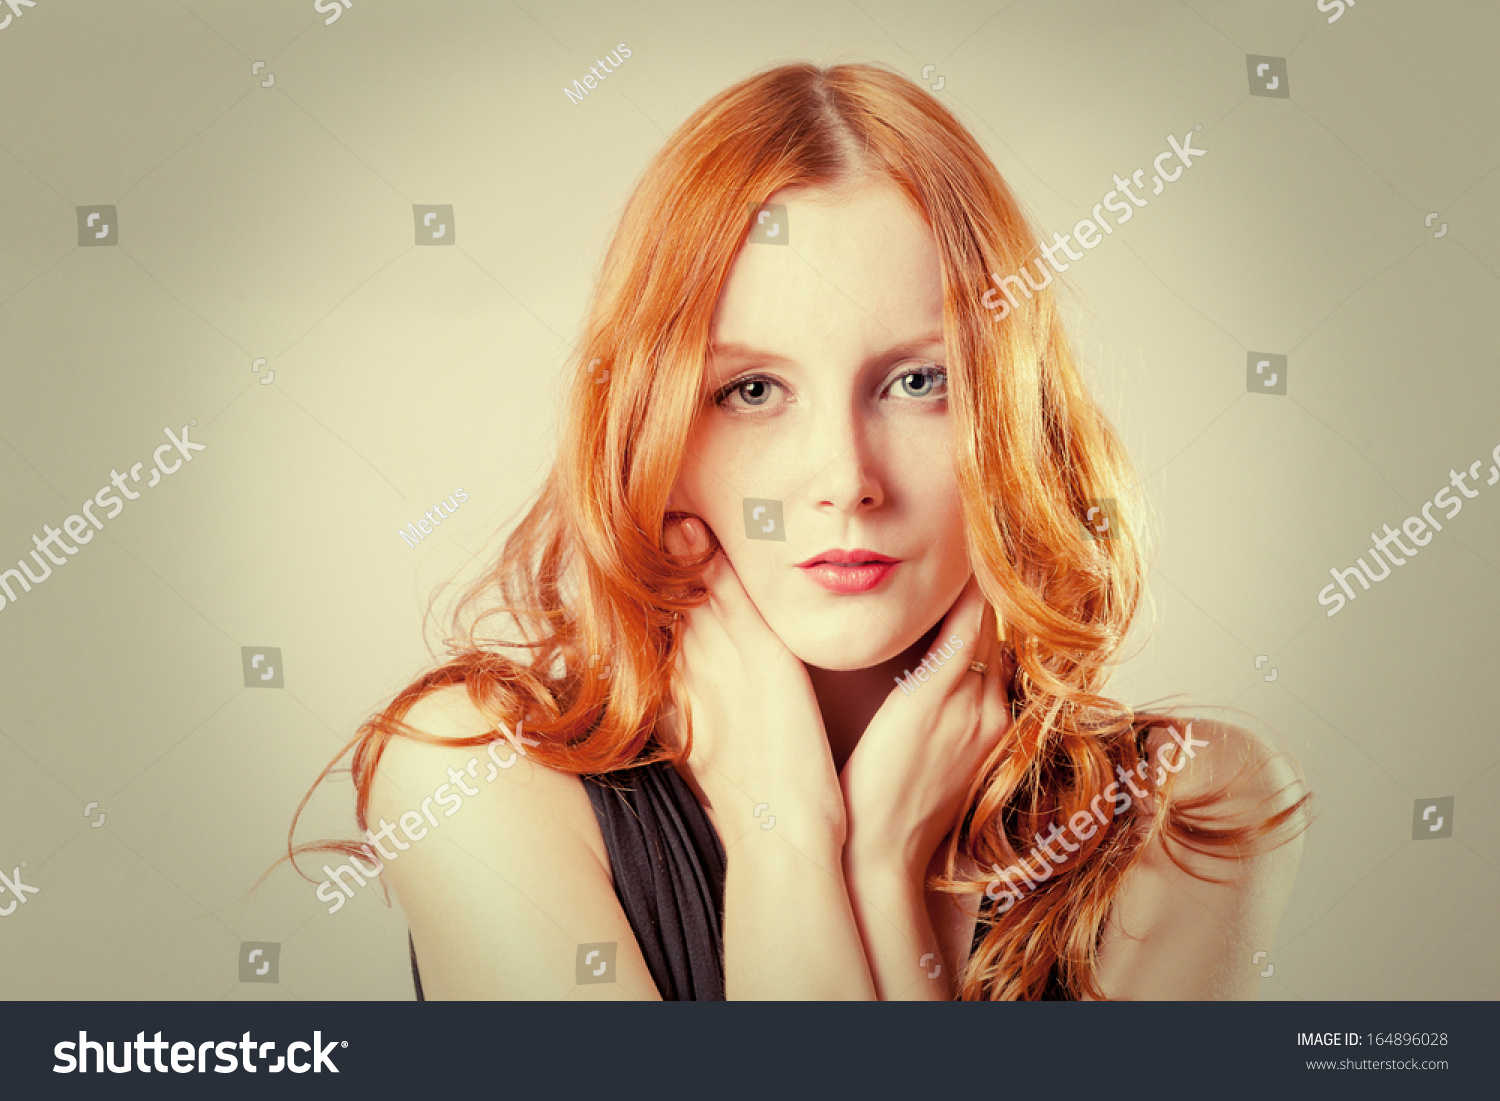 Horizontal beauty shot of a young blue eyed woman with her red hair, touching face by her hands, looks very shy